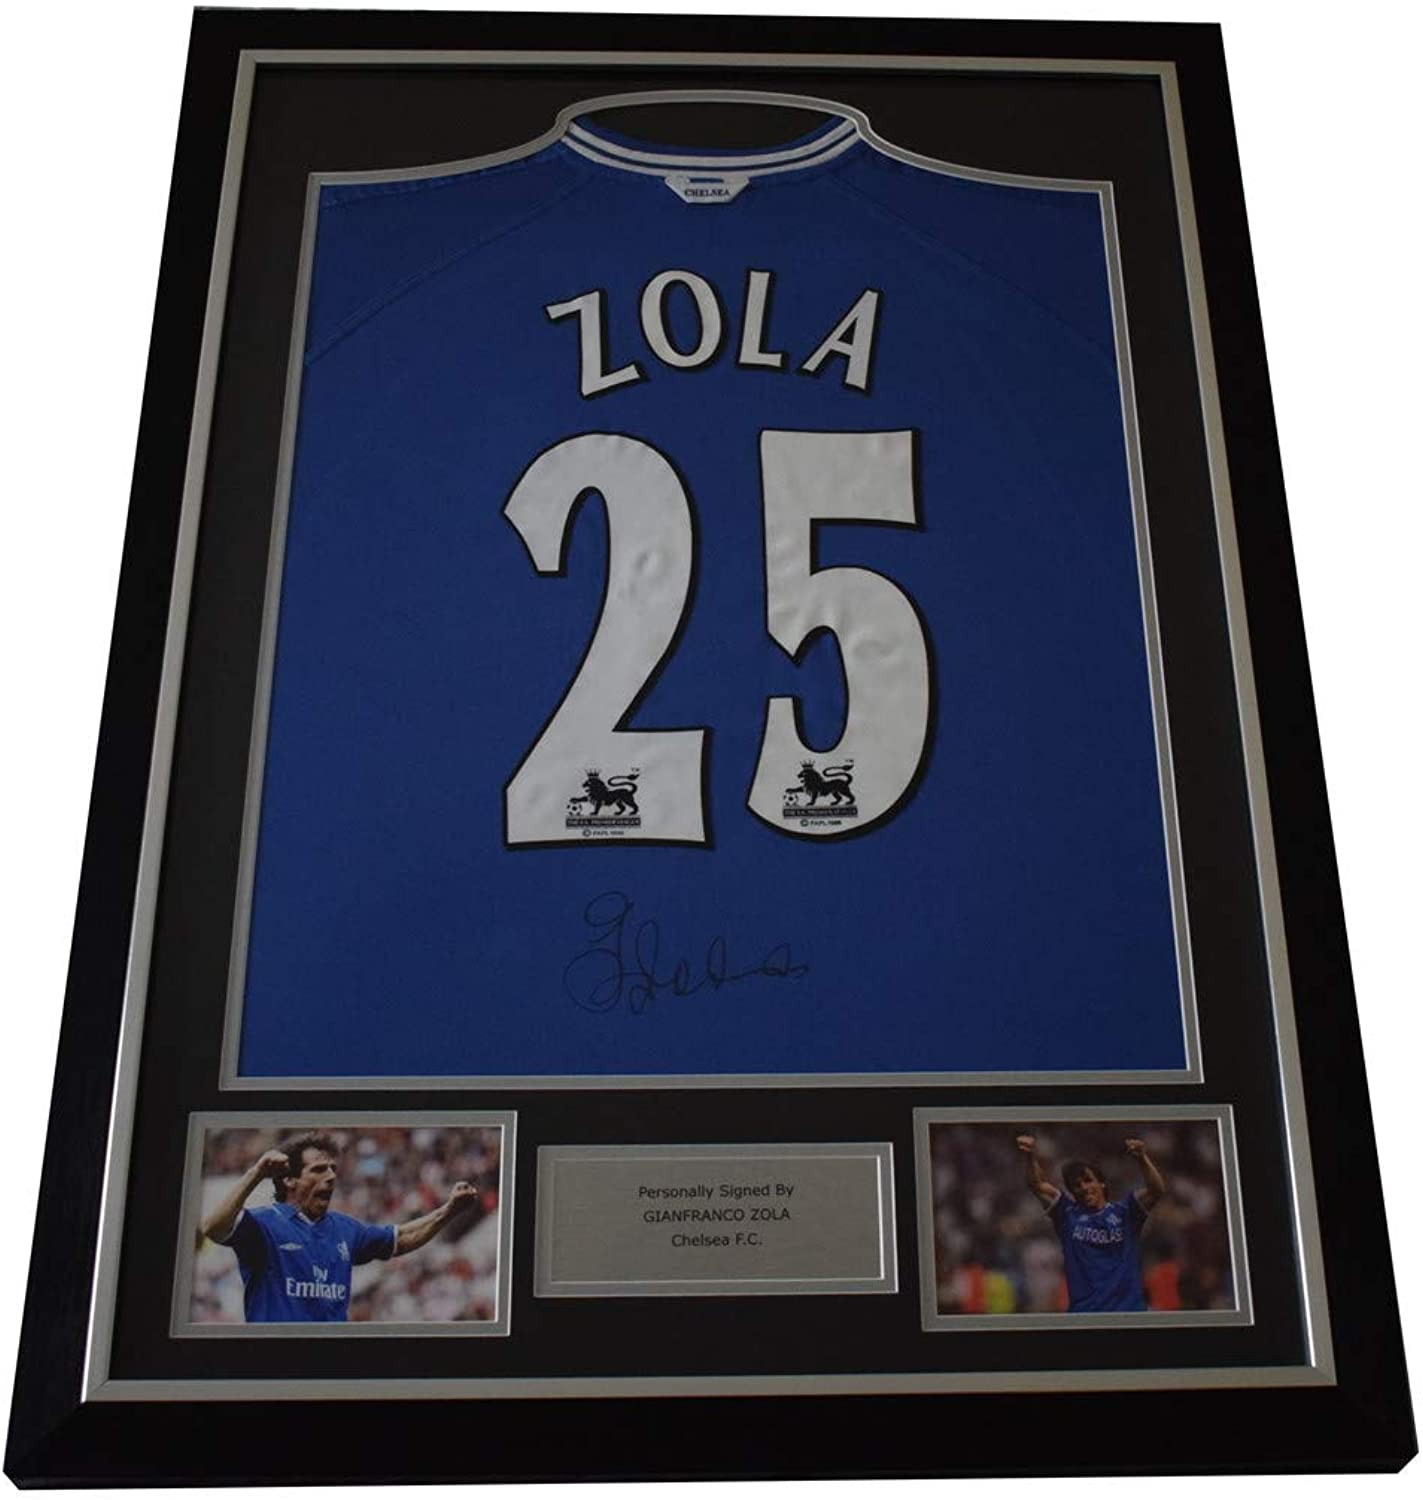 Gianfranco Zola Signed Framed Football Shirt Autograph